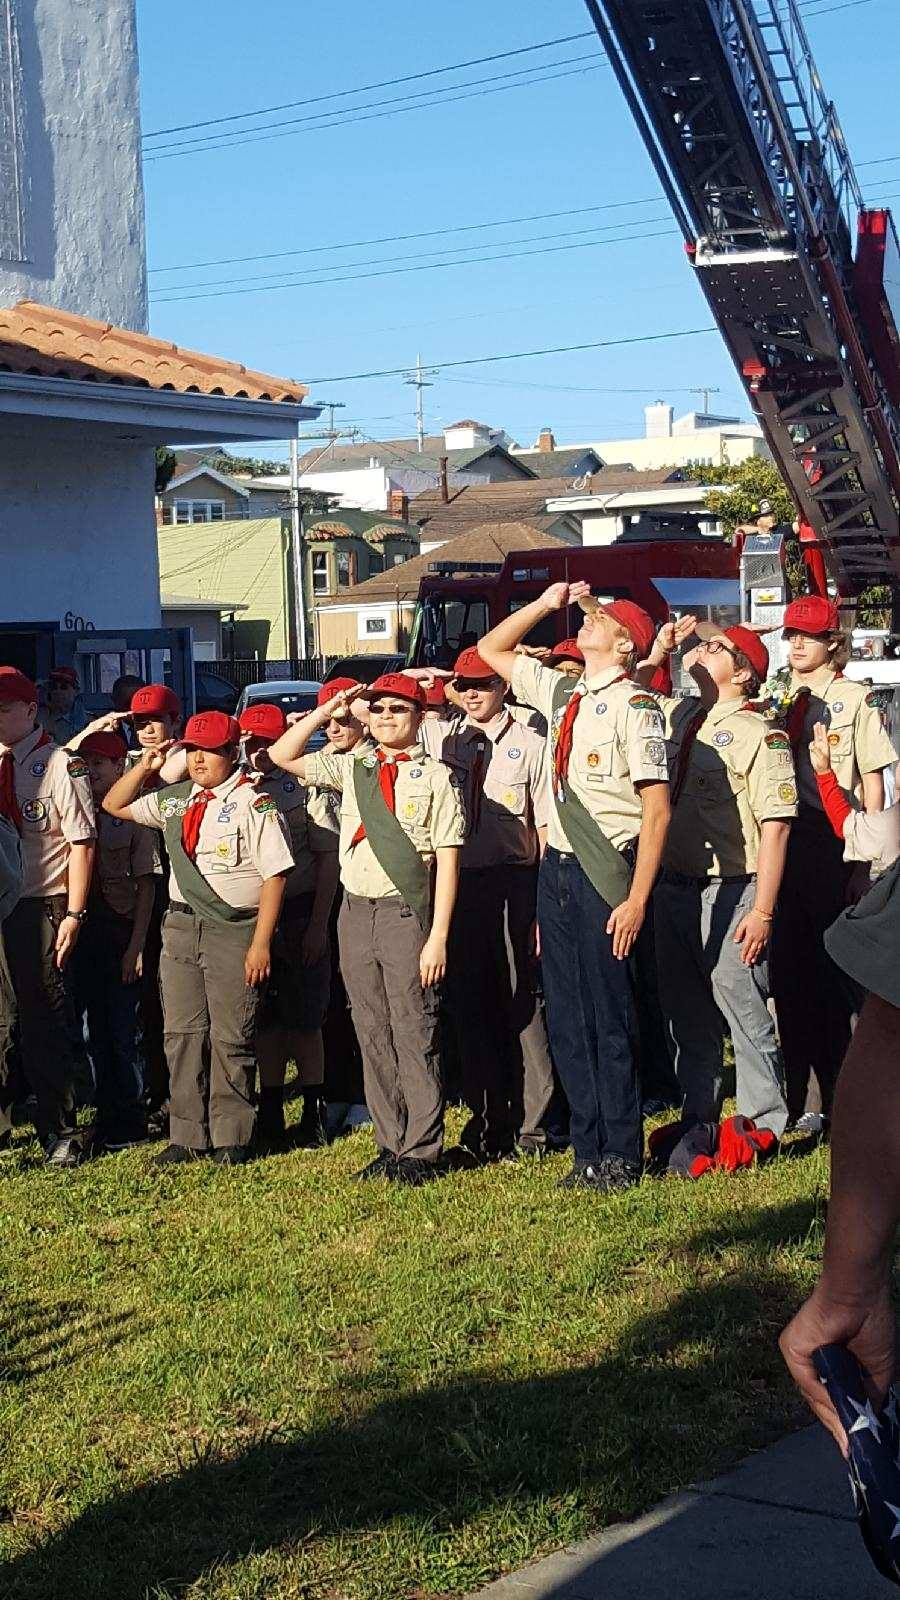 SSFFD/PD Assist Boy Scout Troup 72 Repairing Vandalized VFW Flag Pole